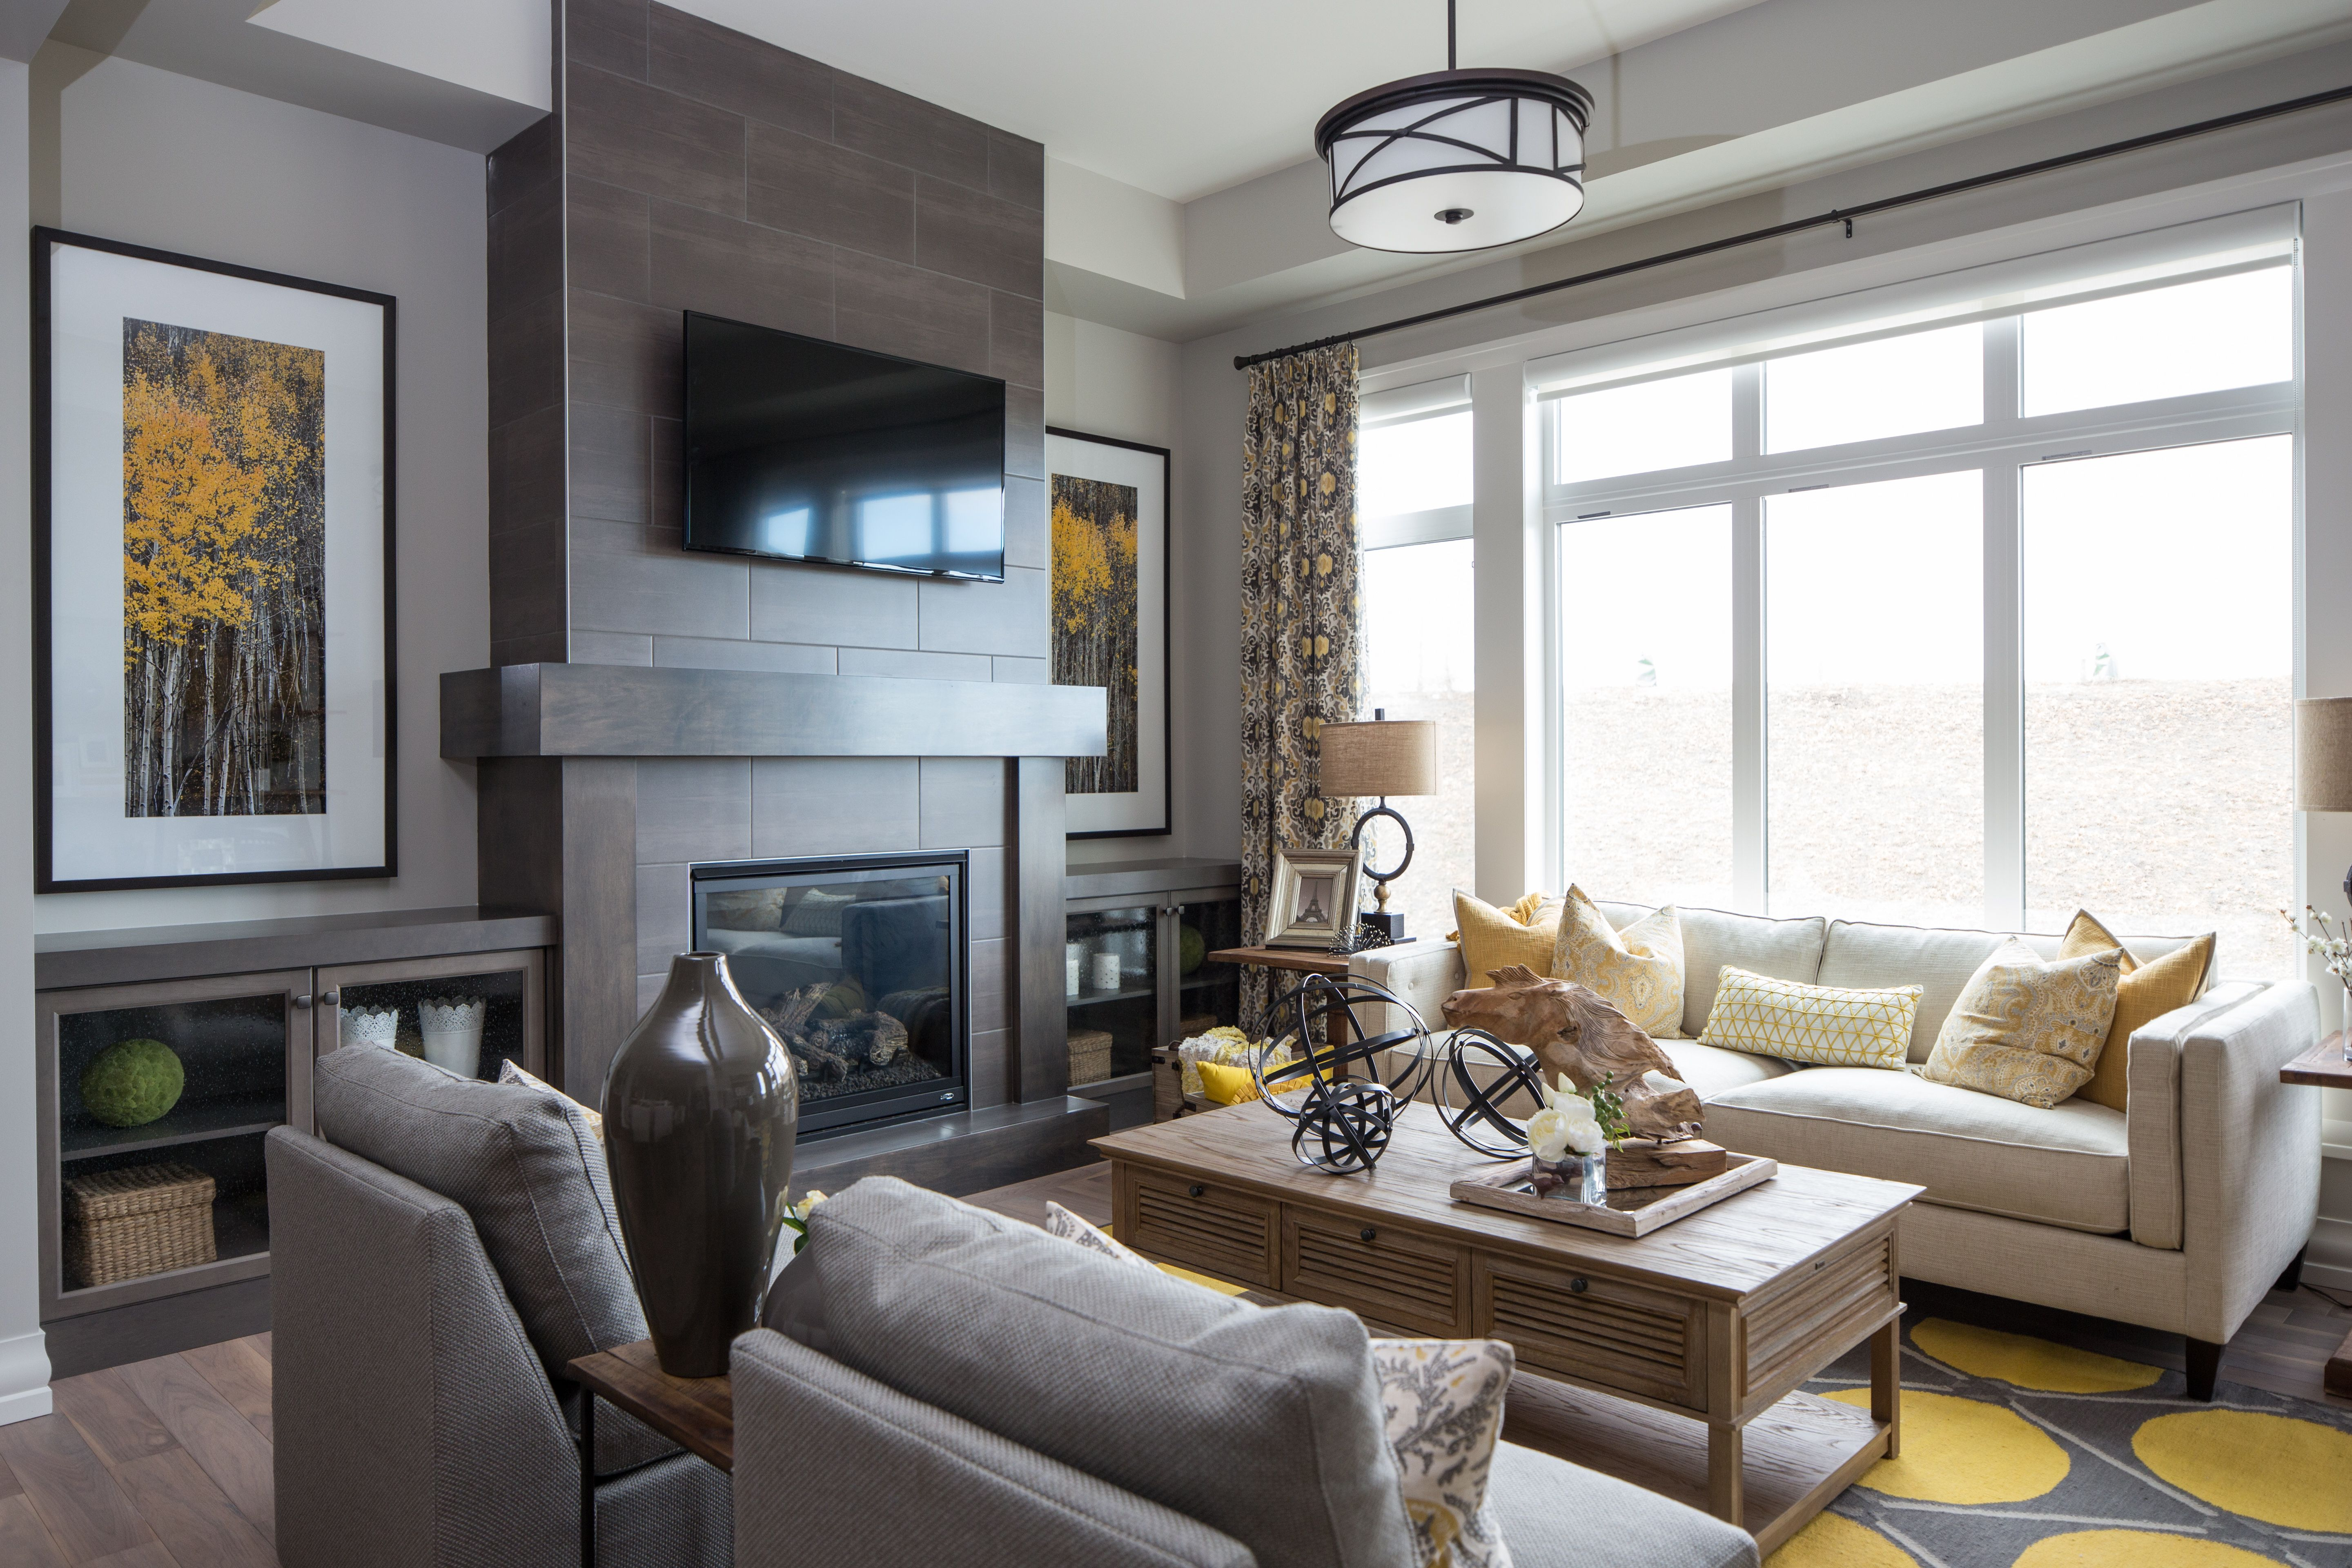 Projects Rochelle Cote The living room From the Artesia Villas